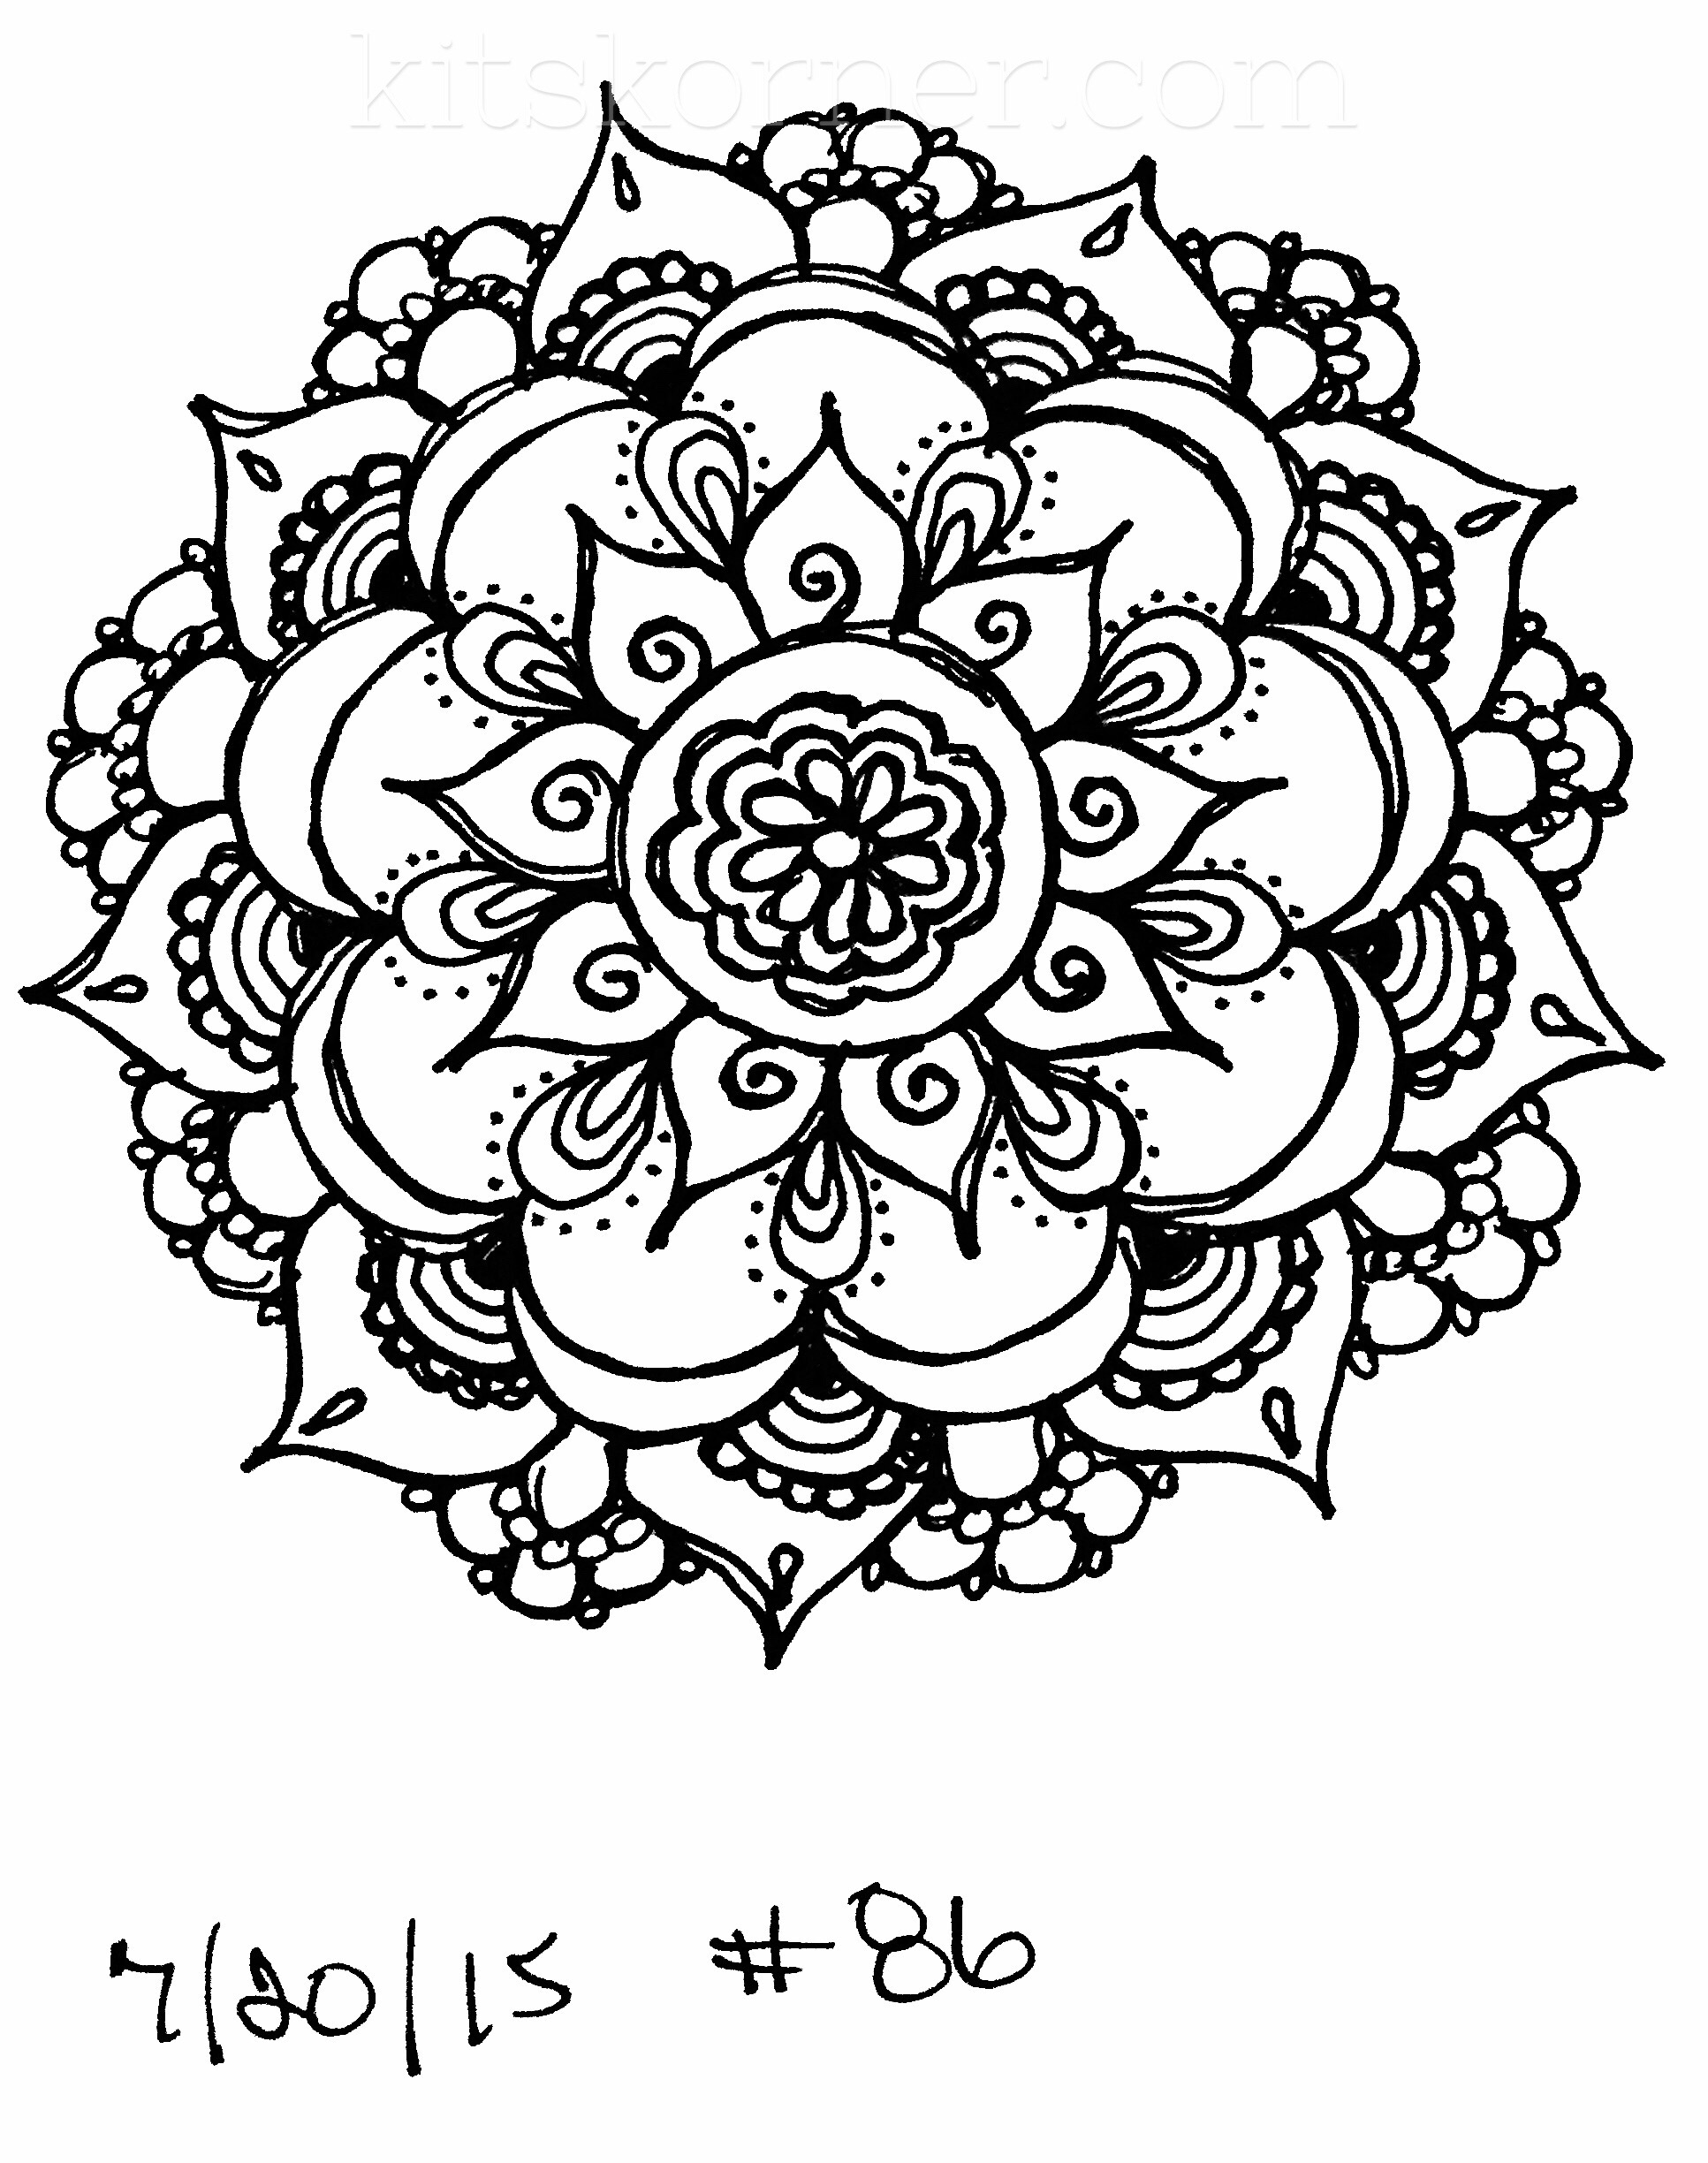 Sketchbook : 100 Mandalas Challenge Week 14